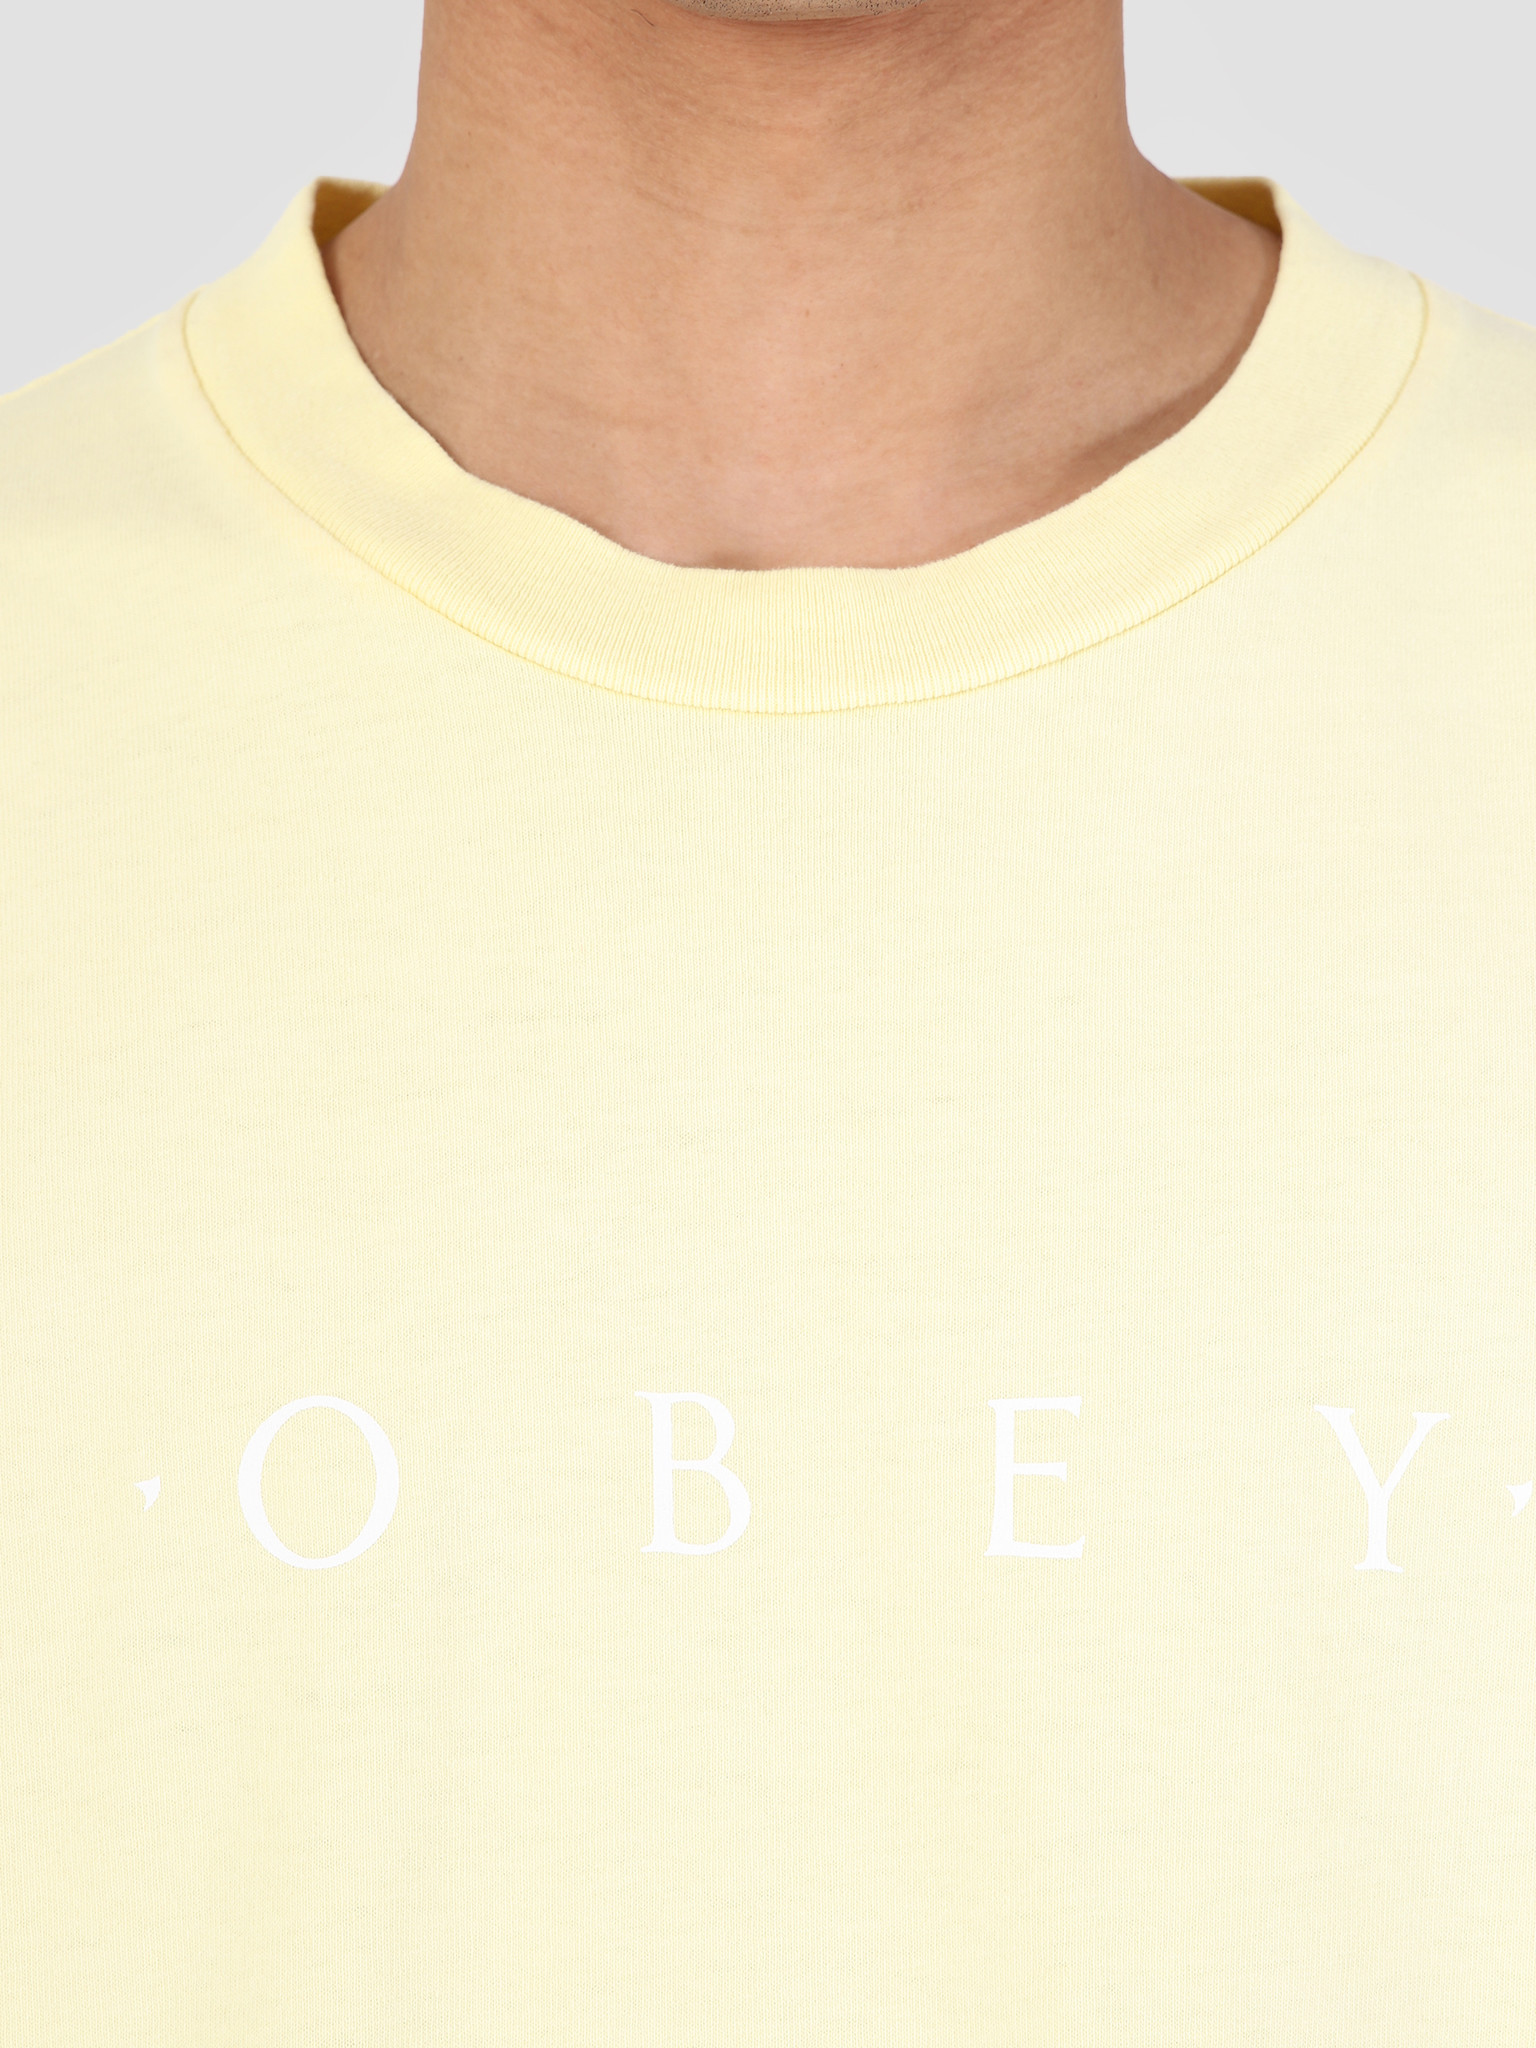 Obey Obey Novel Obey Classic Box T-Shirts LEM 166911578